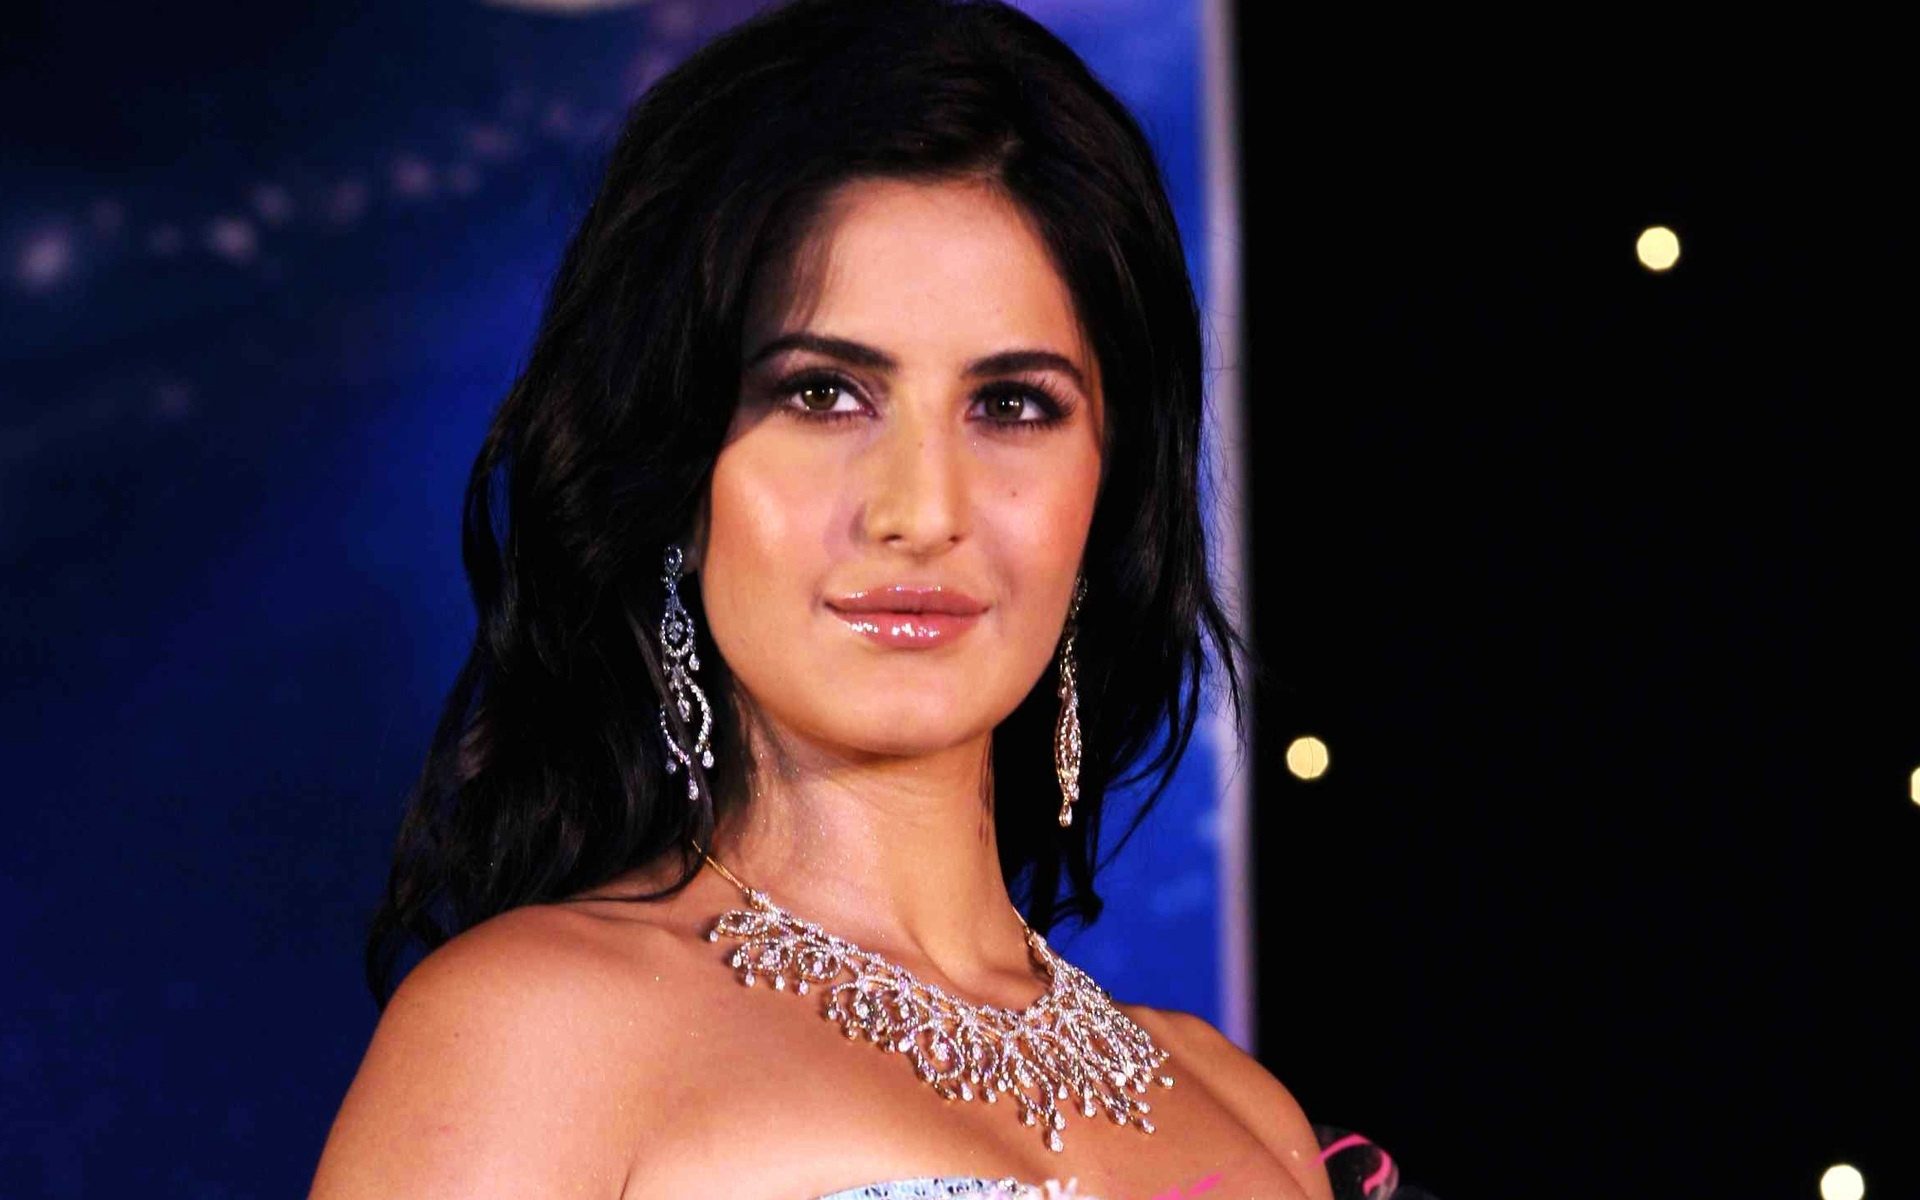 katrina kaif full hd wallpaper and background image | 1920x1200 | id